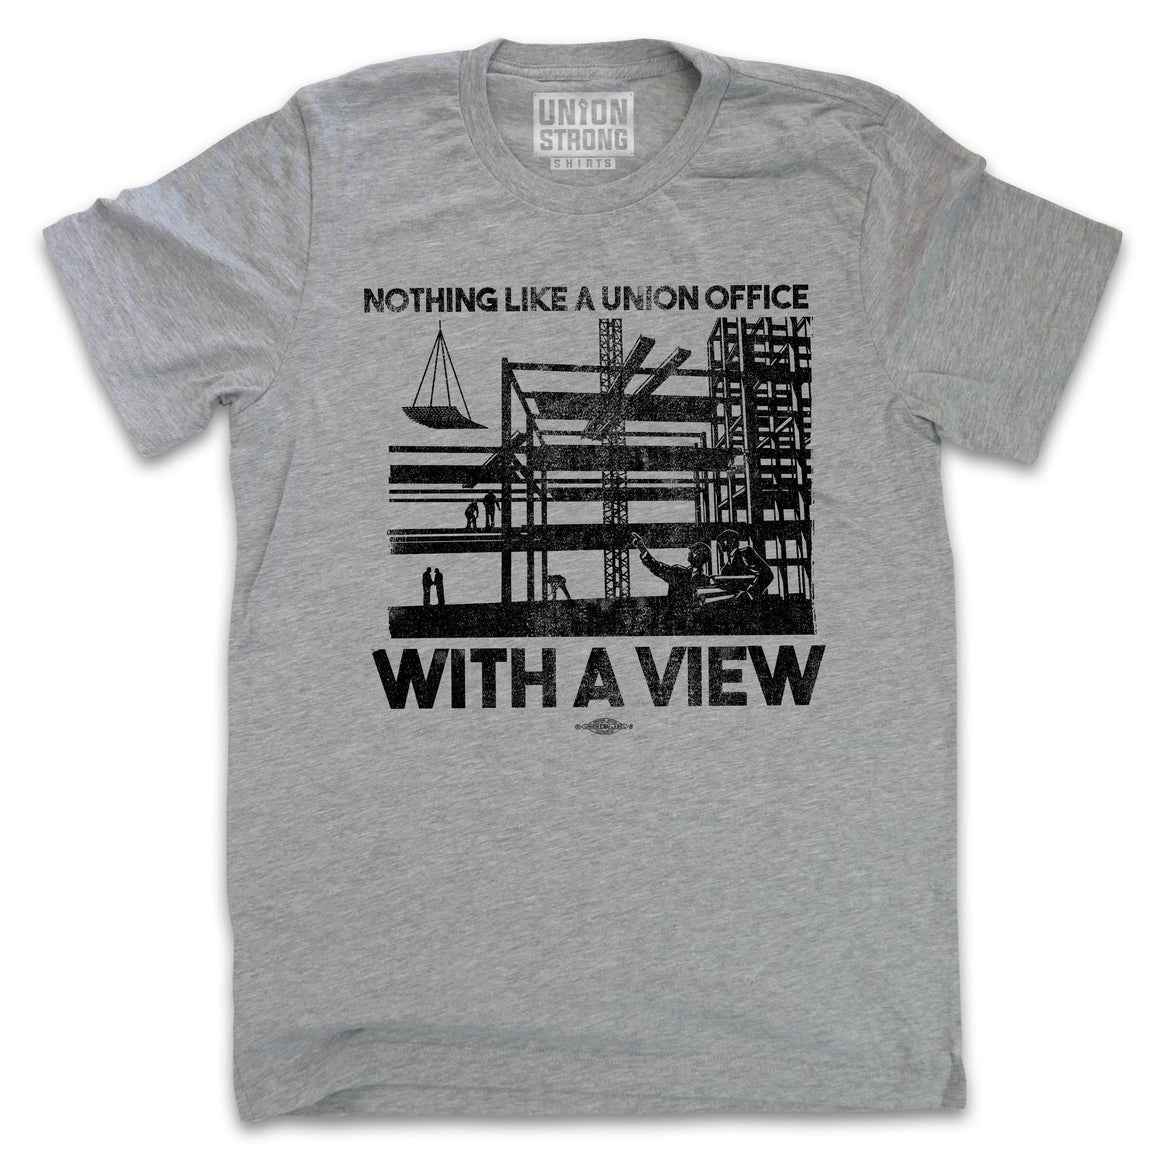 Nothing Like A Union Office With A View Shirts unionstrongshirts